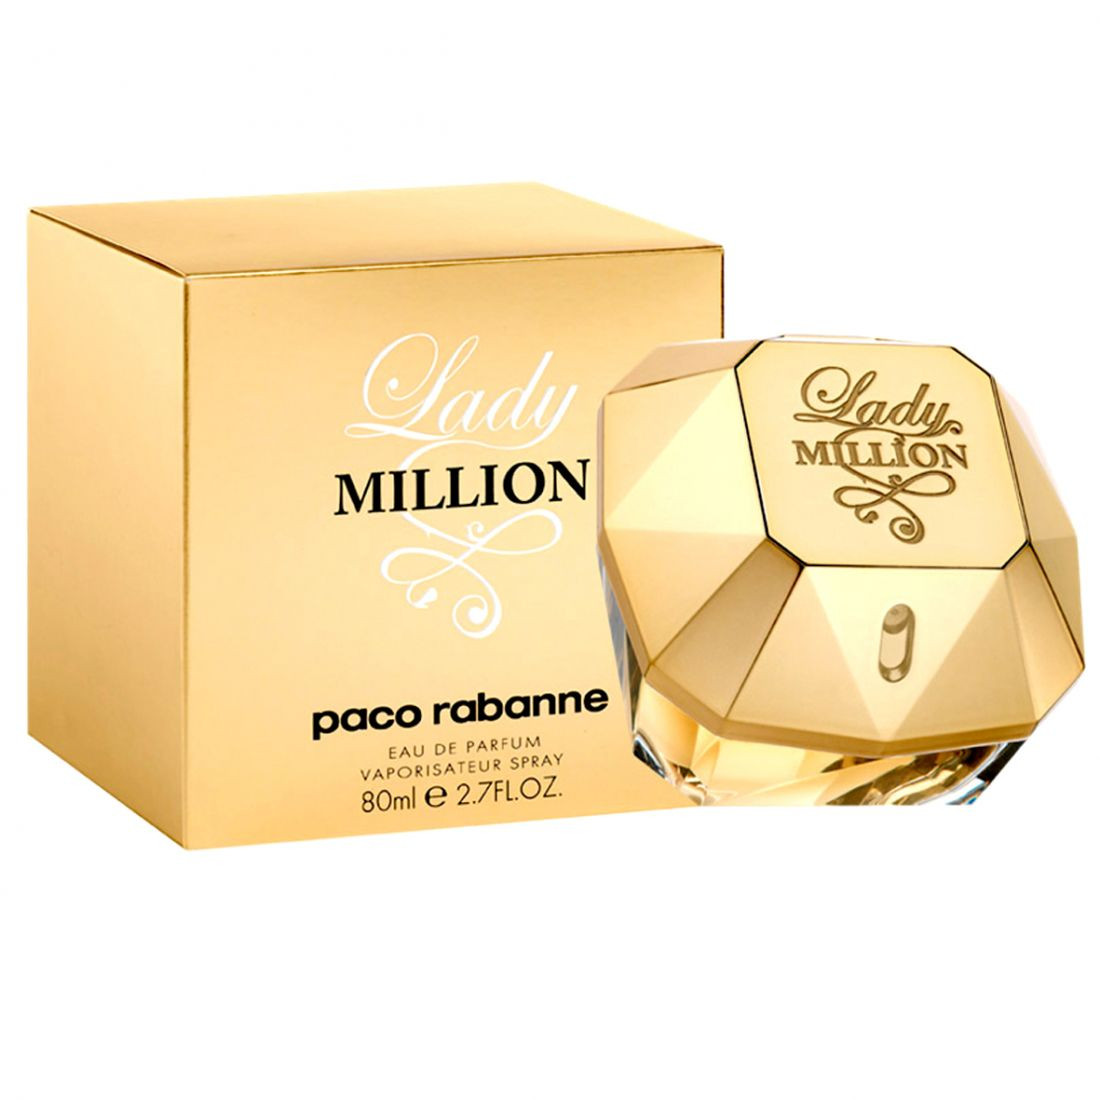 Paco Rabanne - Lady Million, 50 ml